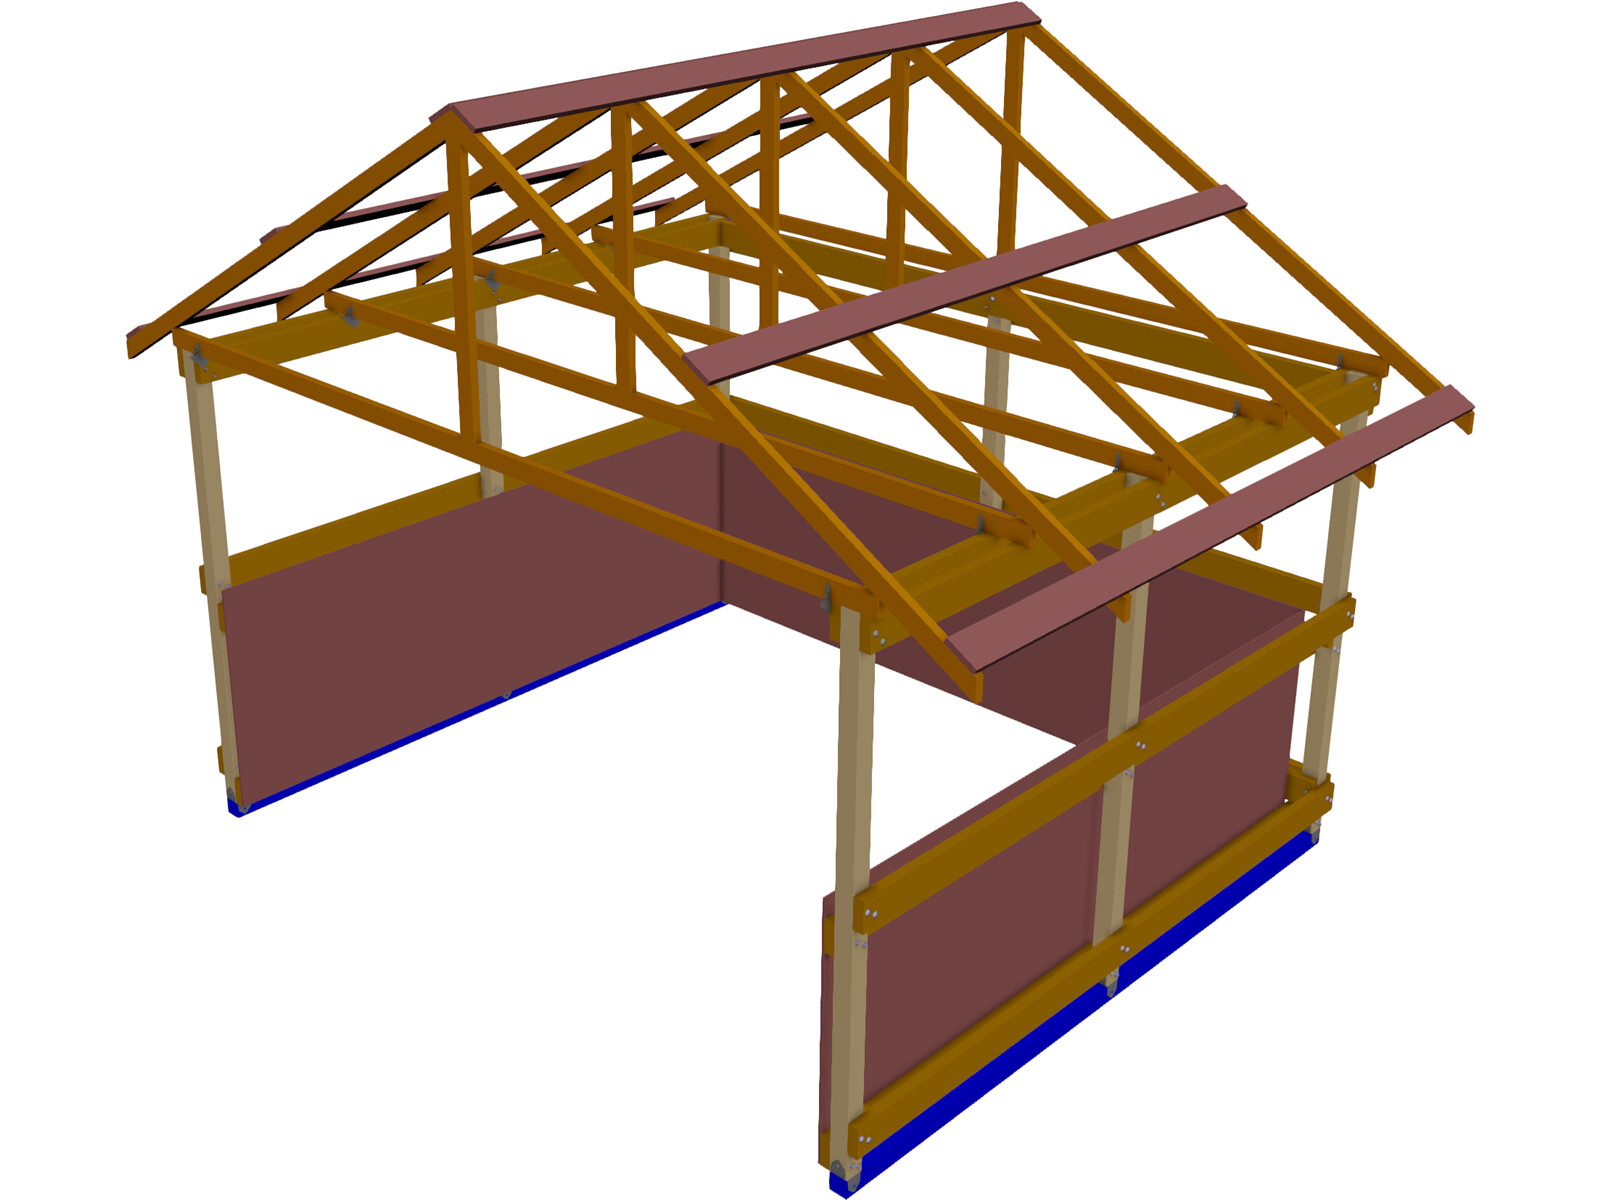 Shed Framing Run-in 3D CAD Model